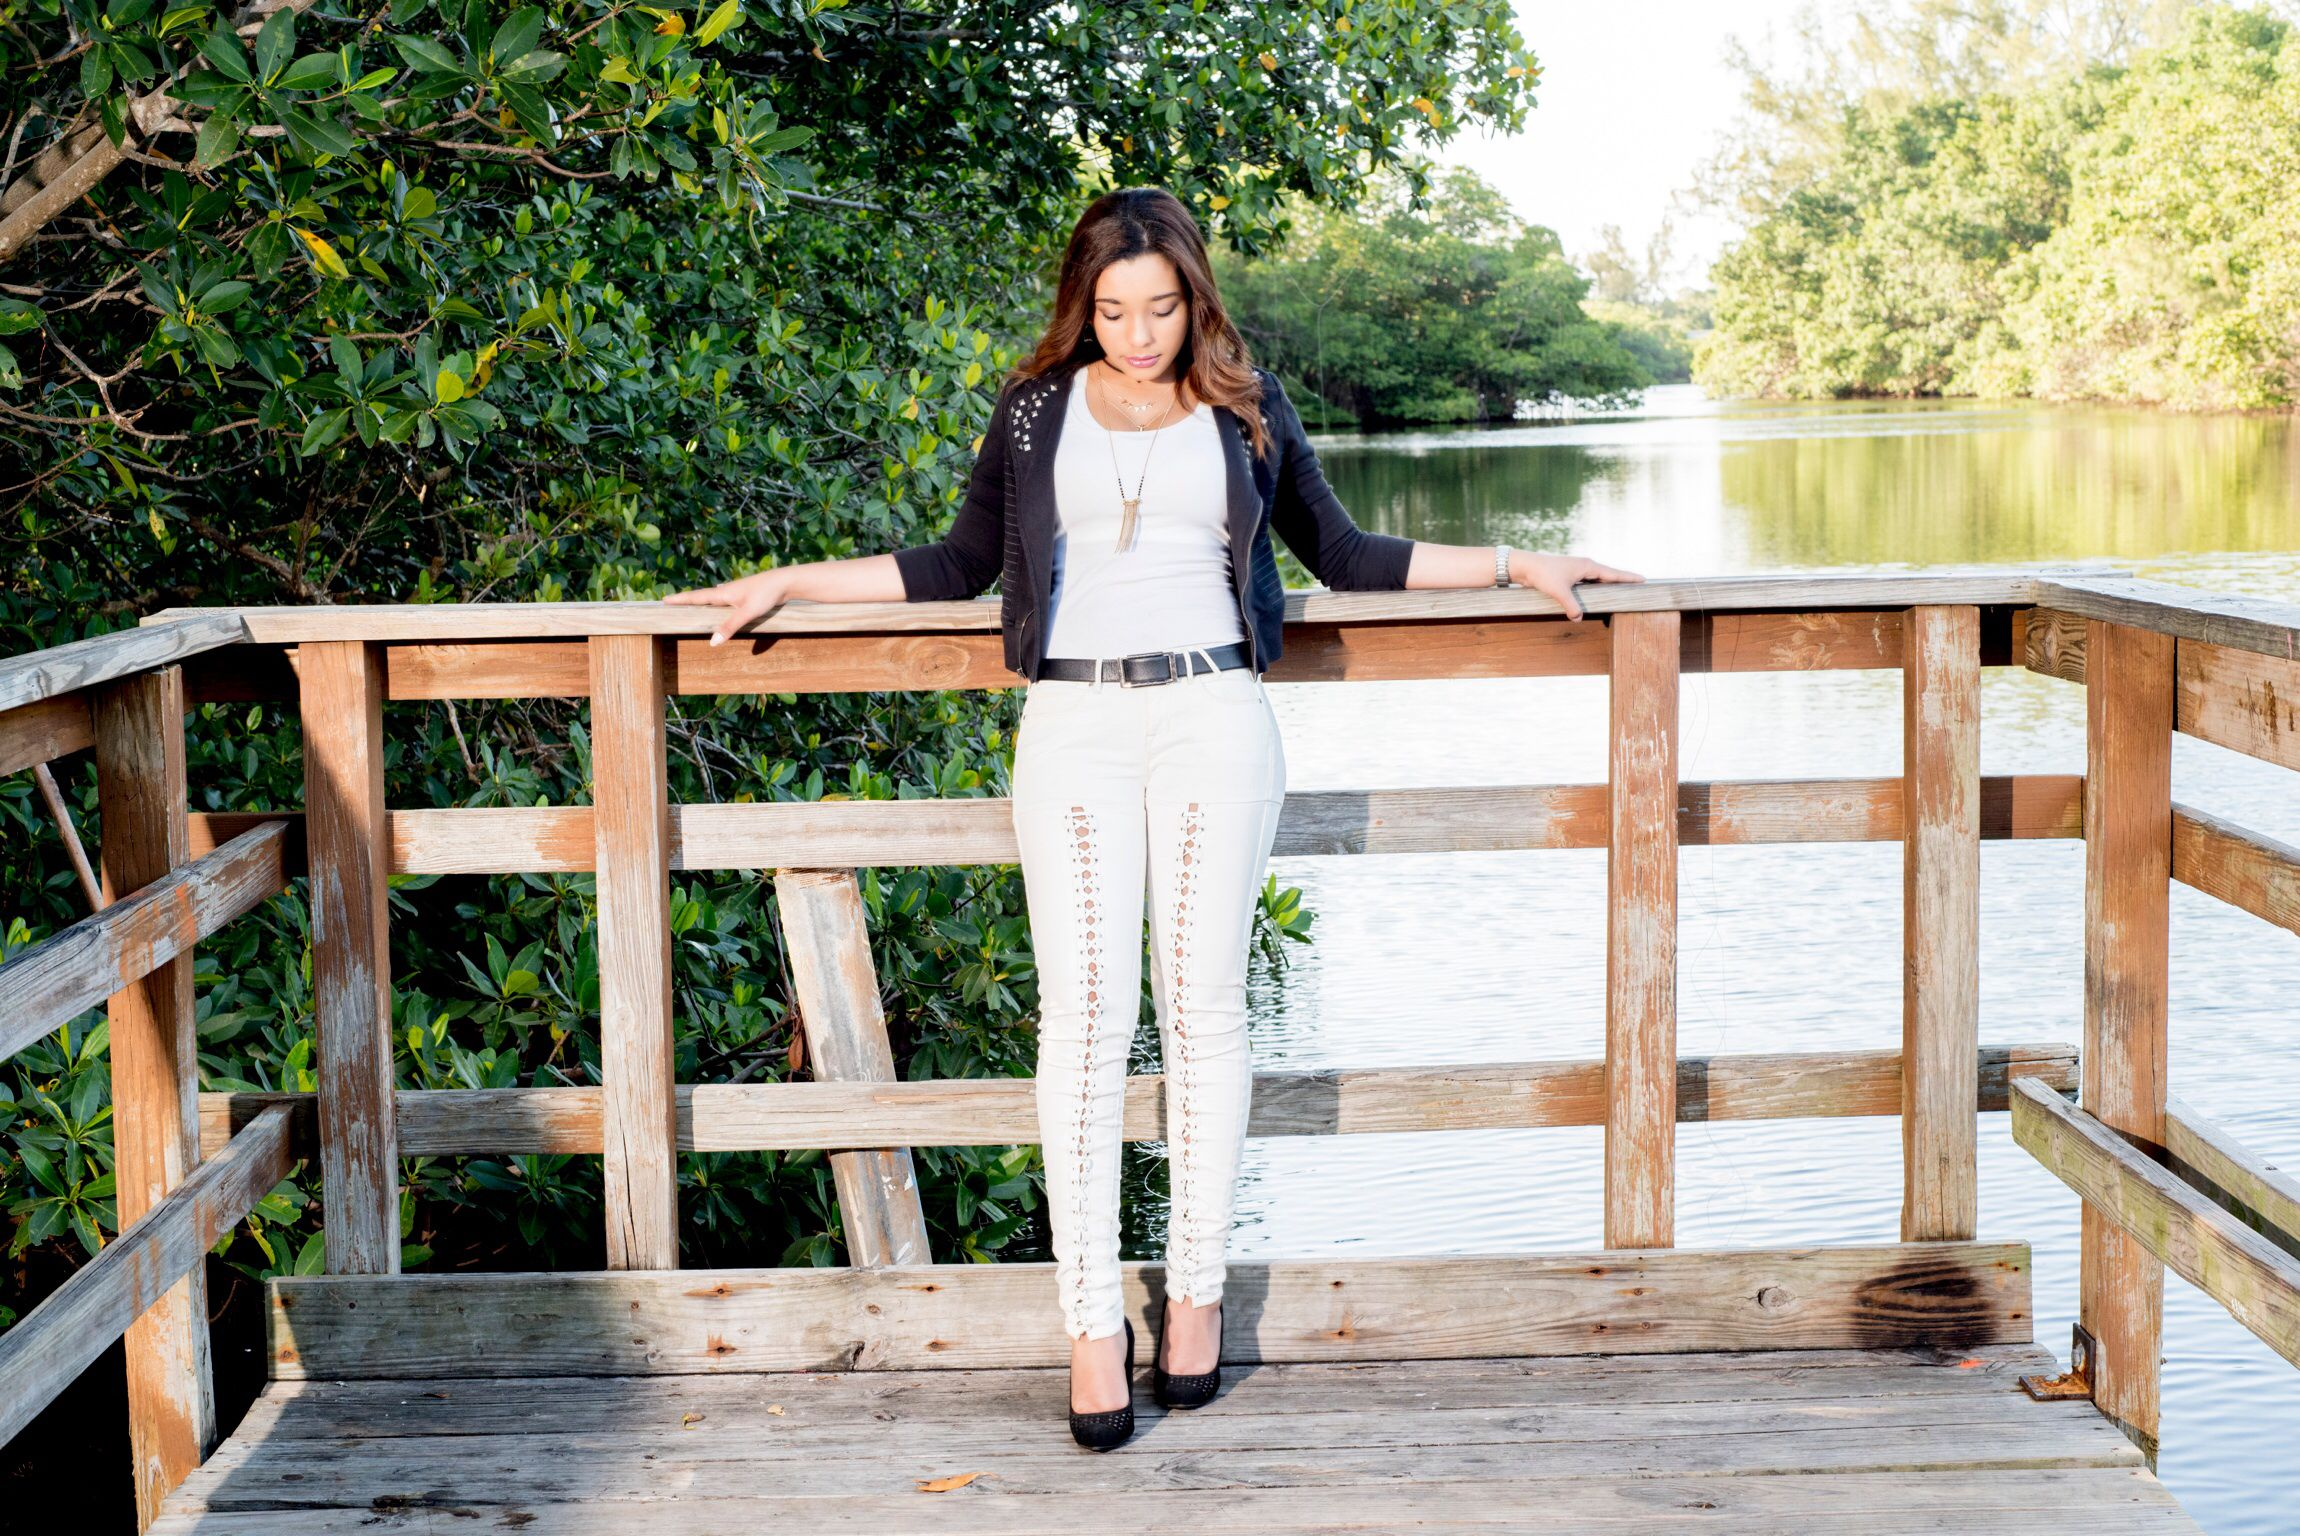 In love with my Guess lace-up Leather jeans. Photo by @jephotopro  #fashionista #fashionblogger #fashionblog #fashionstyle #fashionlover #fasionaddicts #outfitoftheday #style #instafashion #stylebyme #lookbook #streetstyle #photography #photoshoot #miamifashionblogger #miamiphotographer #photoftheday #styleinspiration